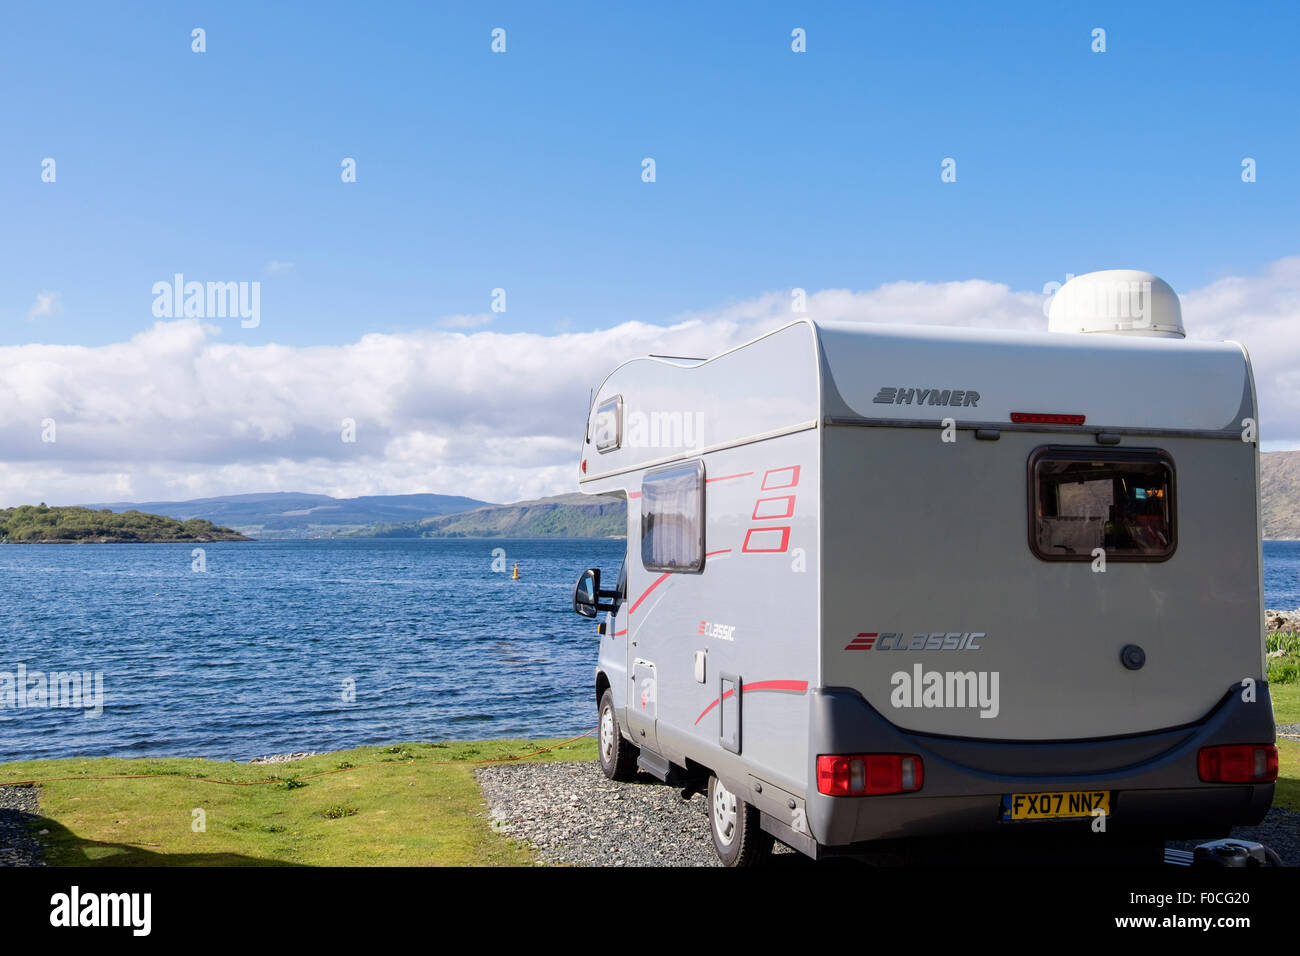 Hymer Motorhome in campsite overlooking bay and Sound of Mull. Craignure Isle of Mull Inner Hebrides Western Isles - Stock Image